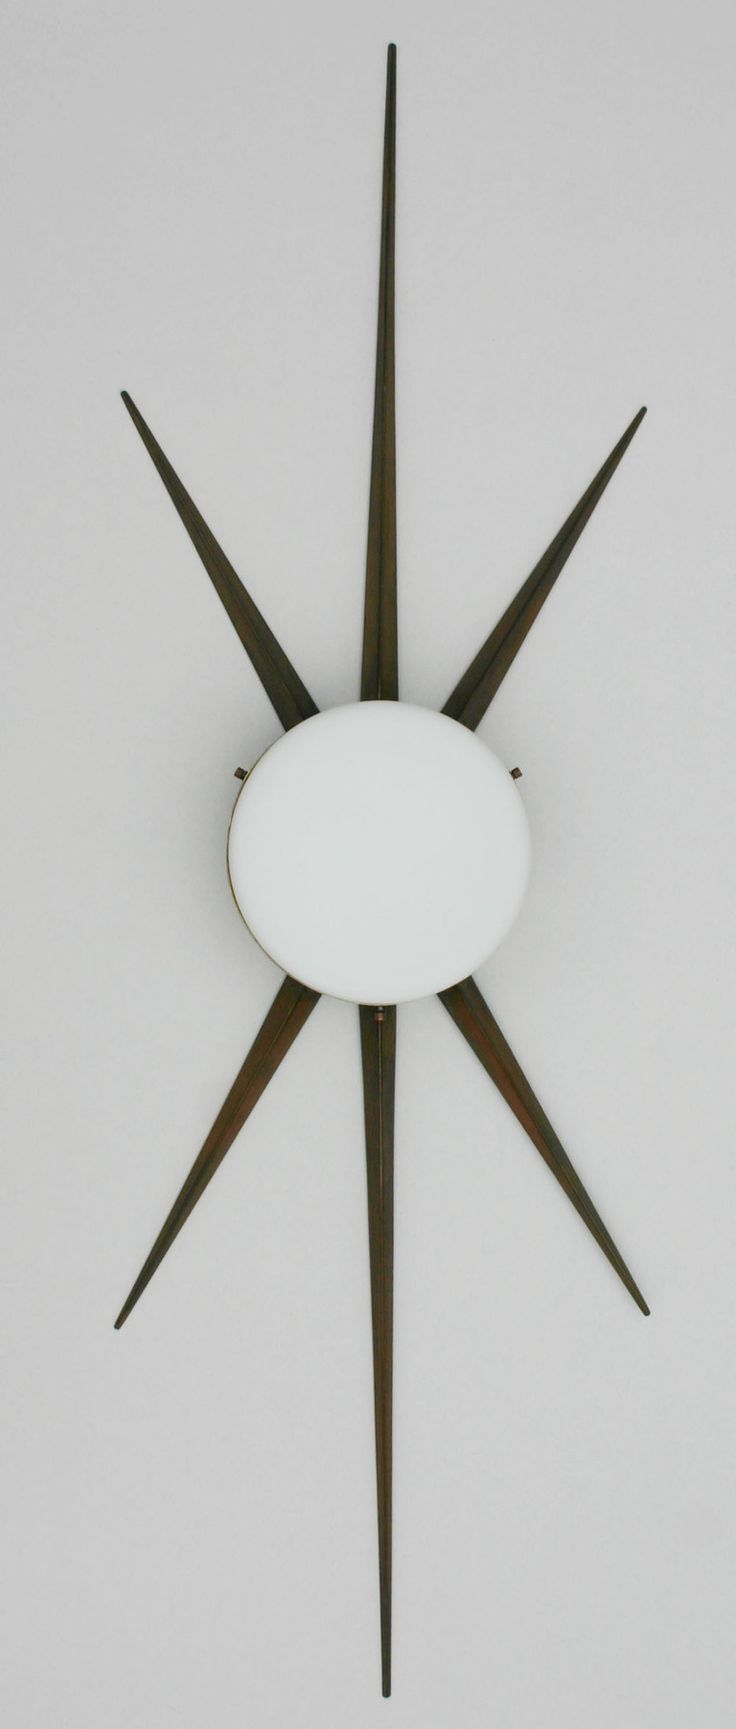 Gio Ponti Attributed; Bronze, Brass And Milk Glass Wall Light For  Arredoluce, C1950